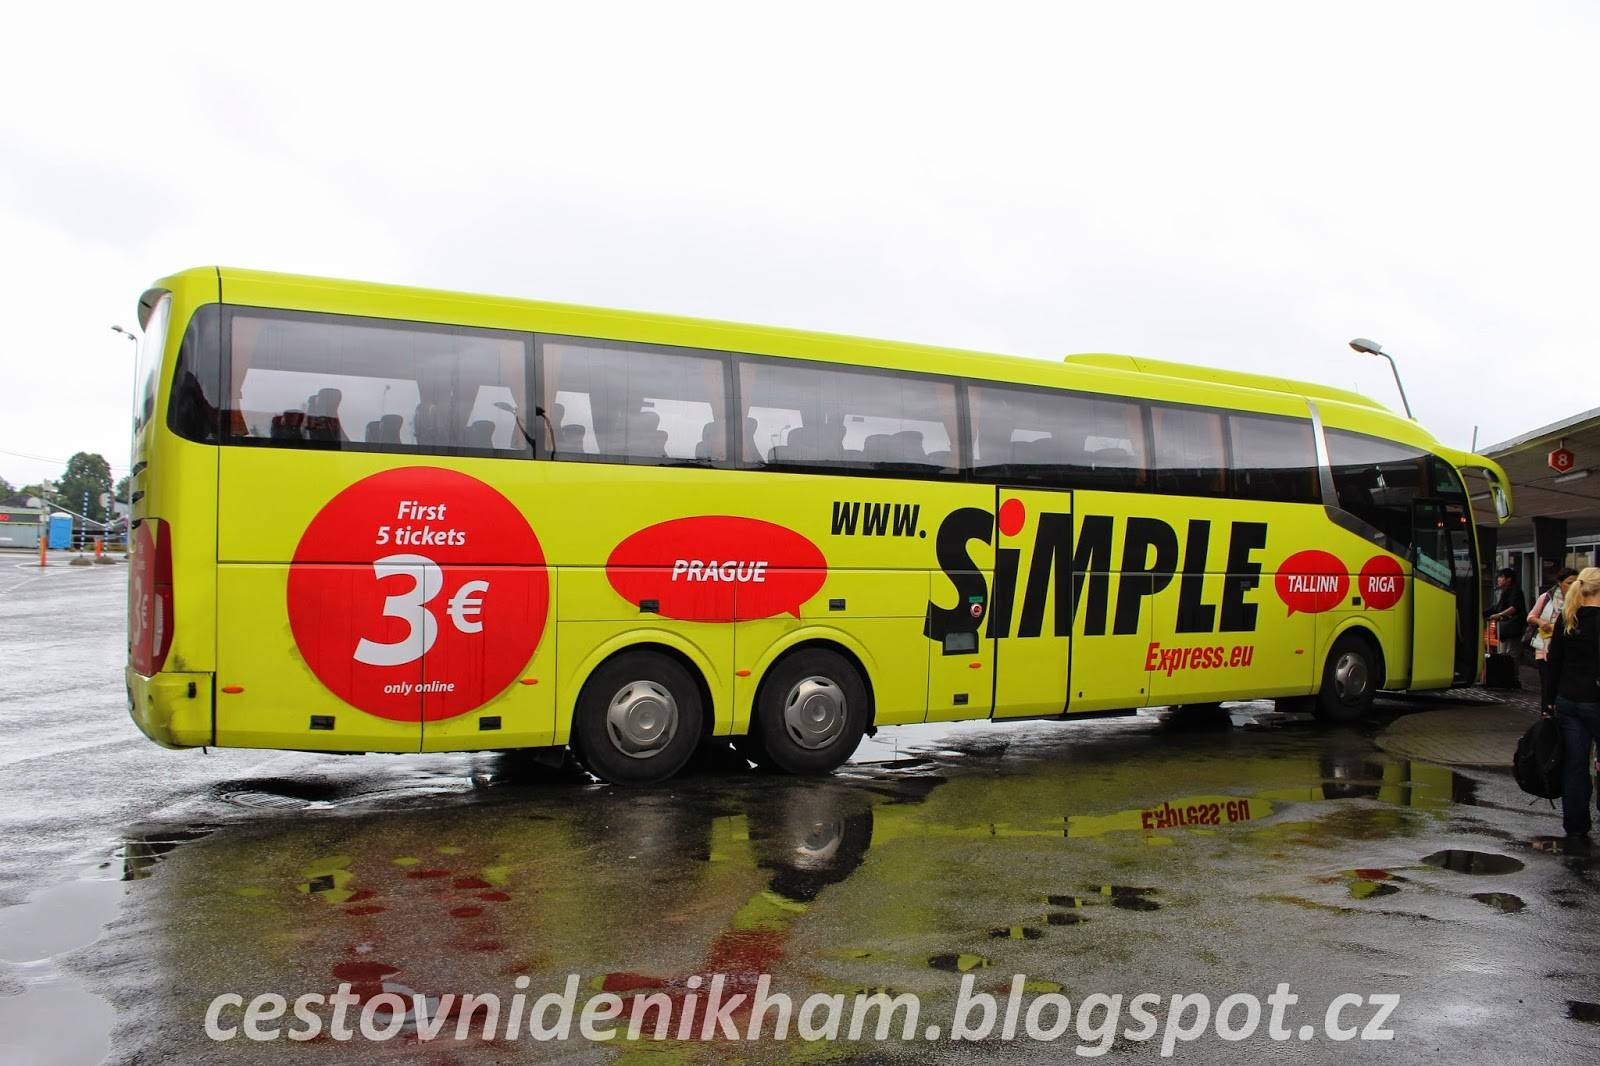 SimpleExpress bus